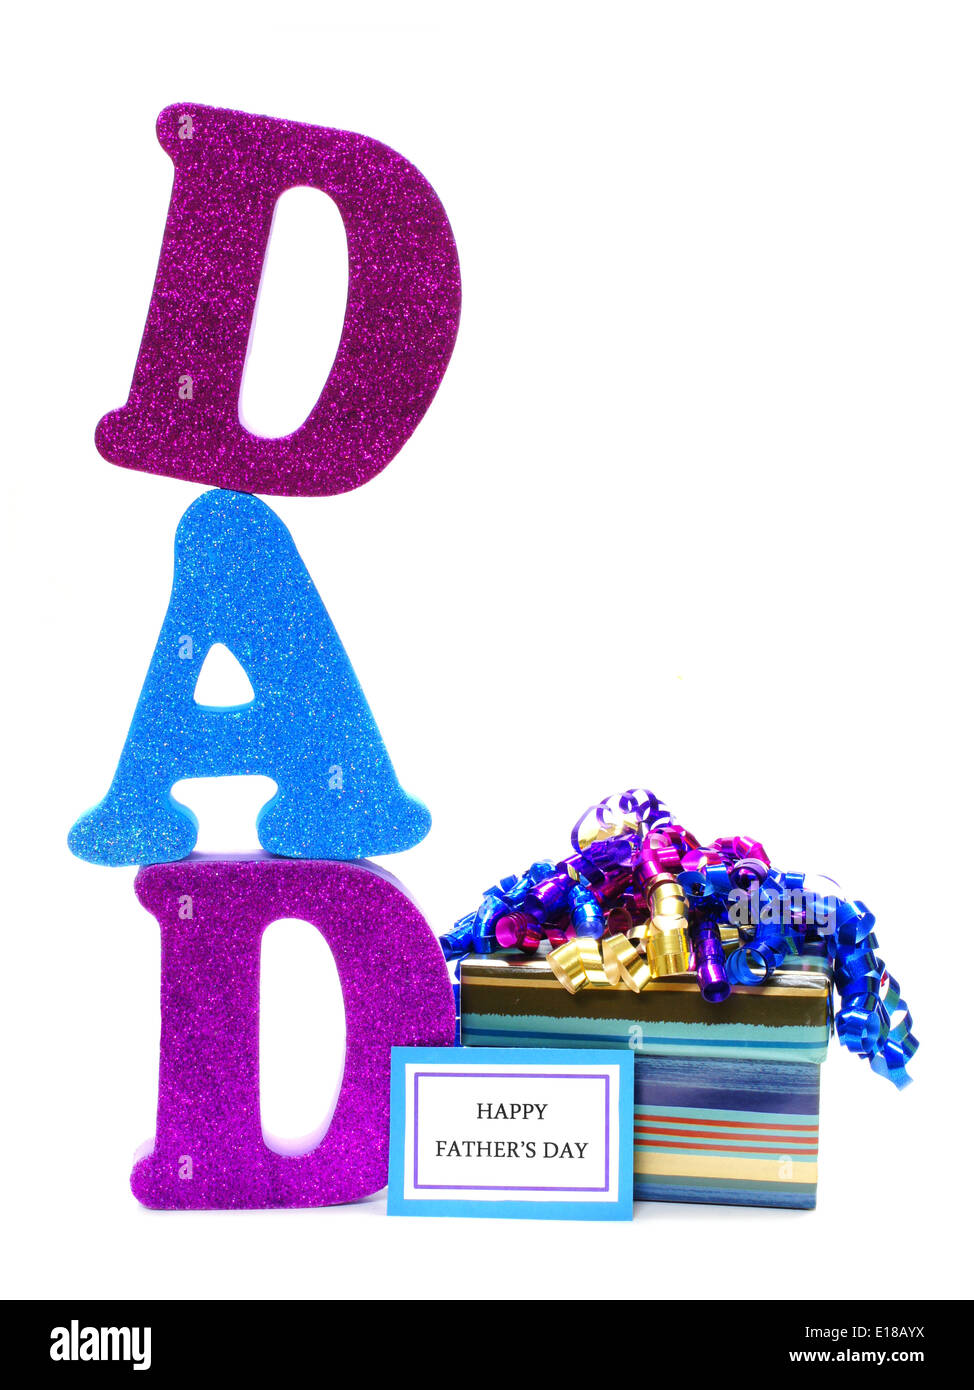 Shiny Letters Spelling Dad With Gift Box And Happy Fathers Day Tag